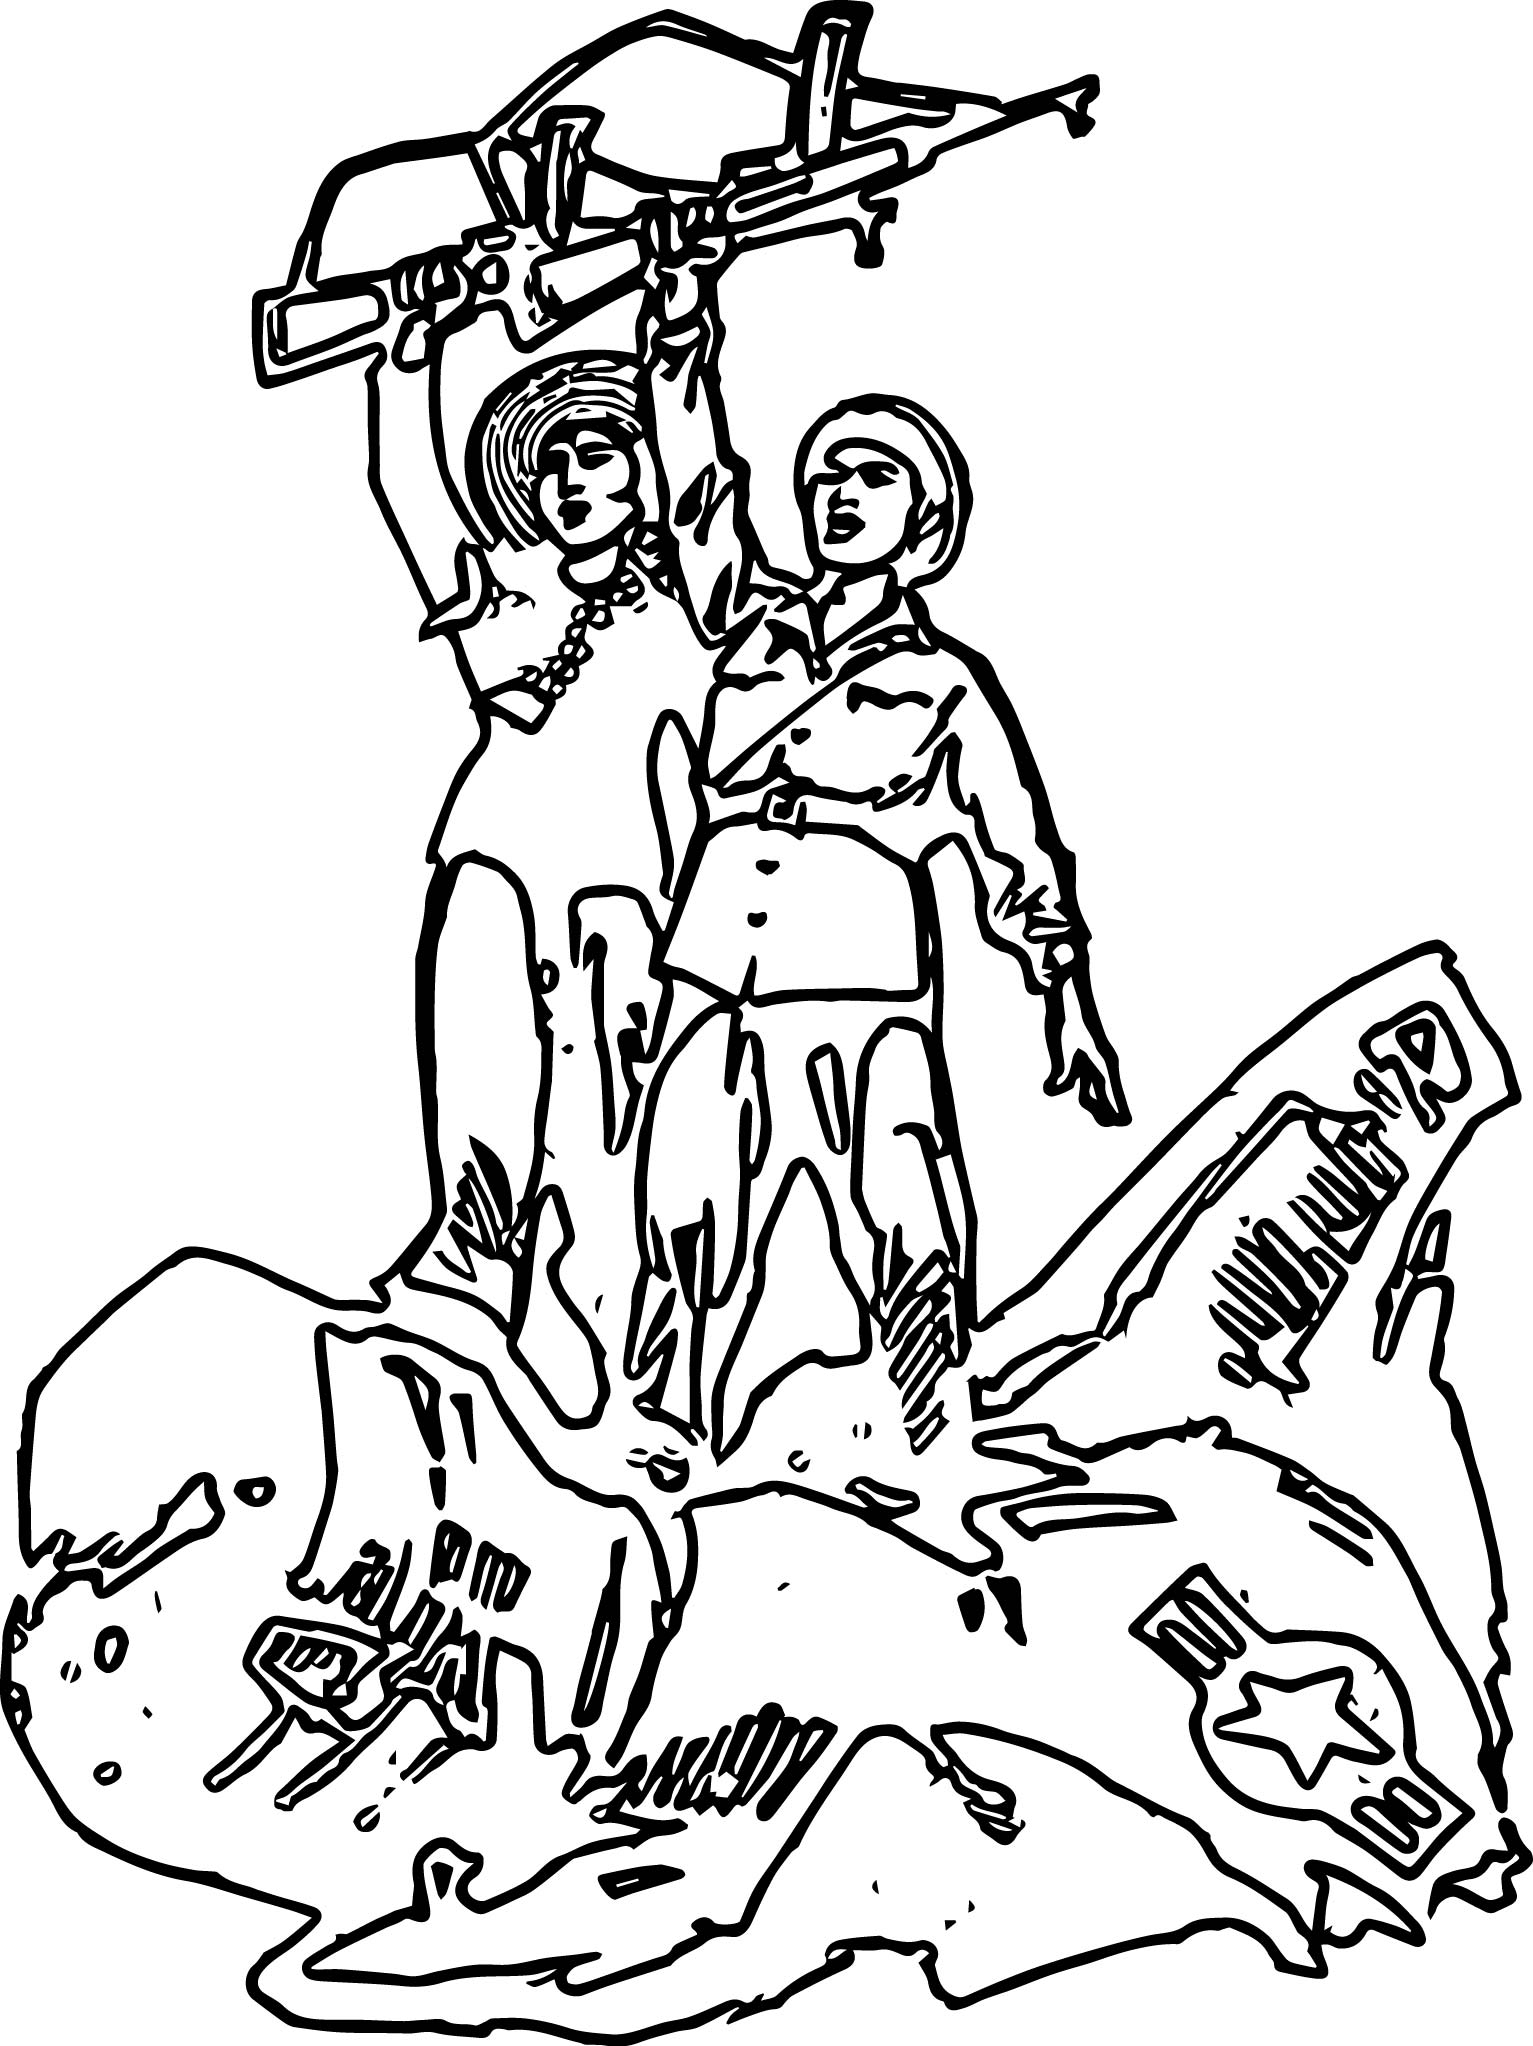 American Revolution Antius Graphic Coloring Page